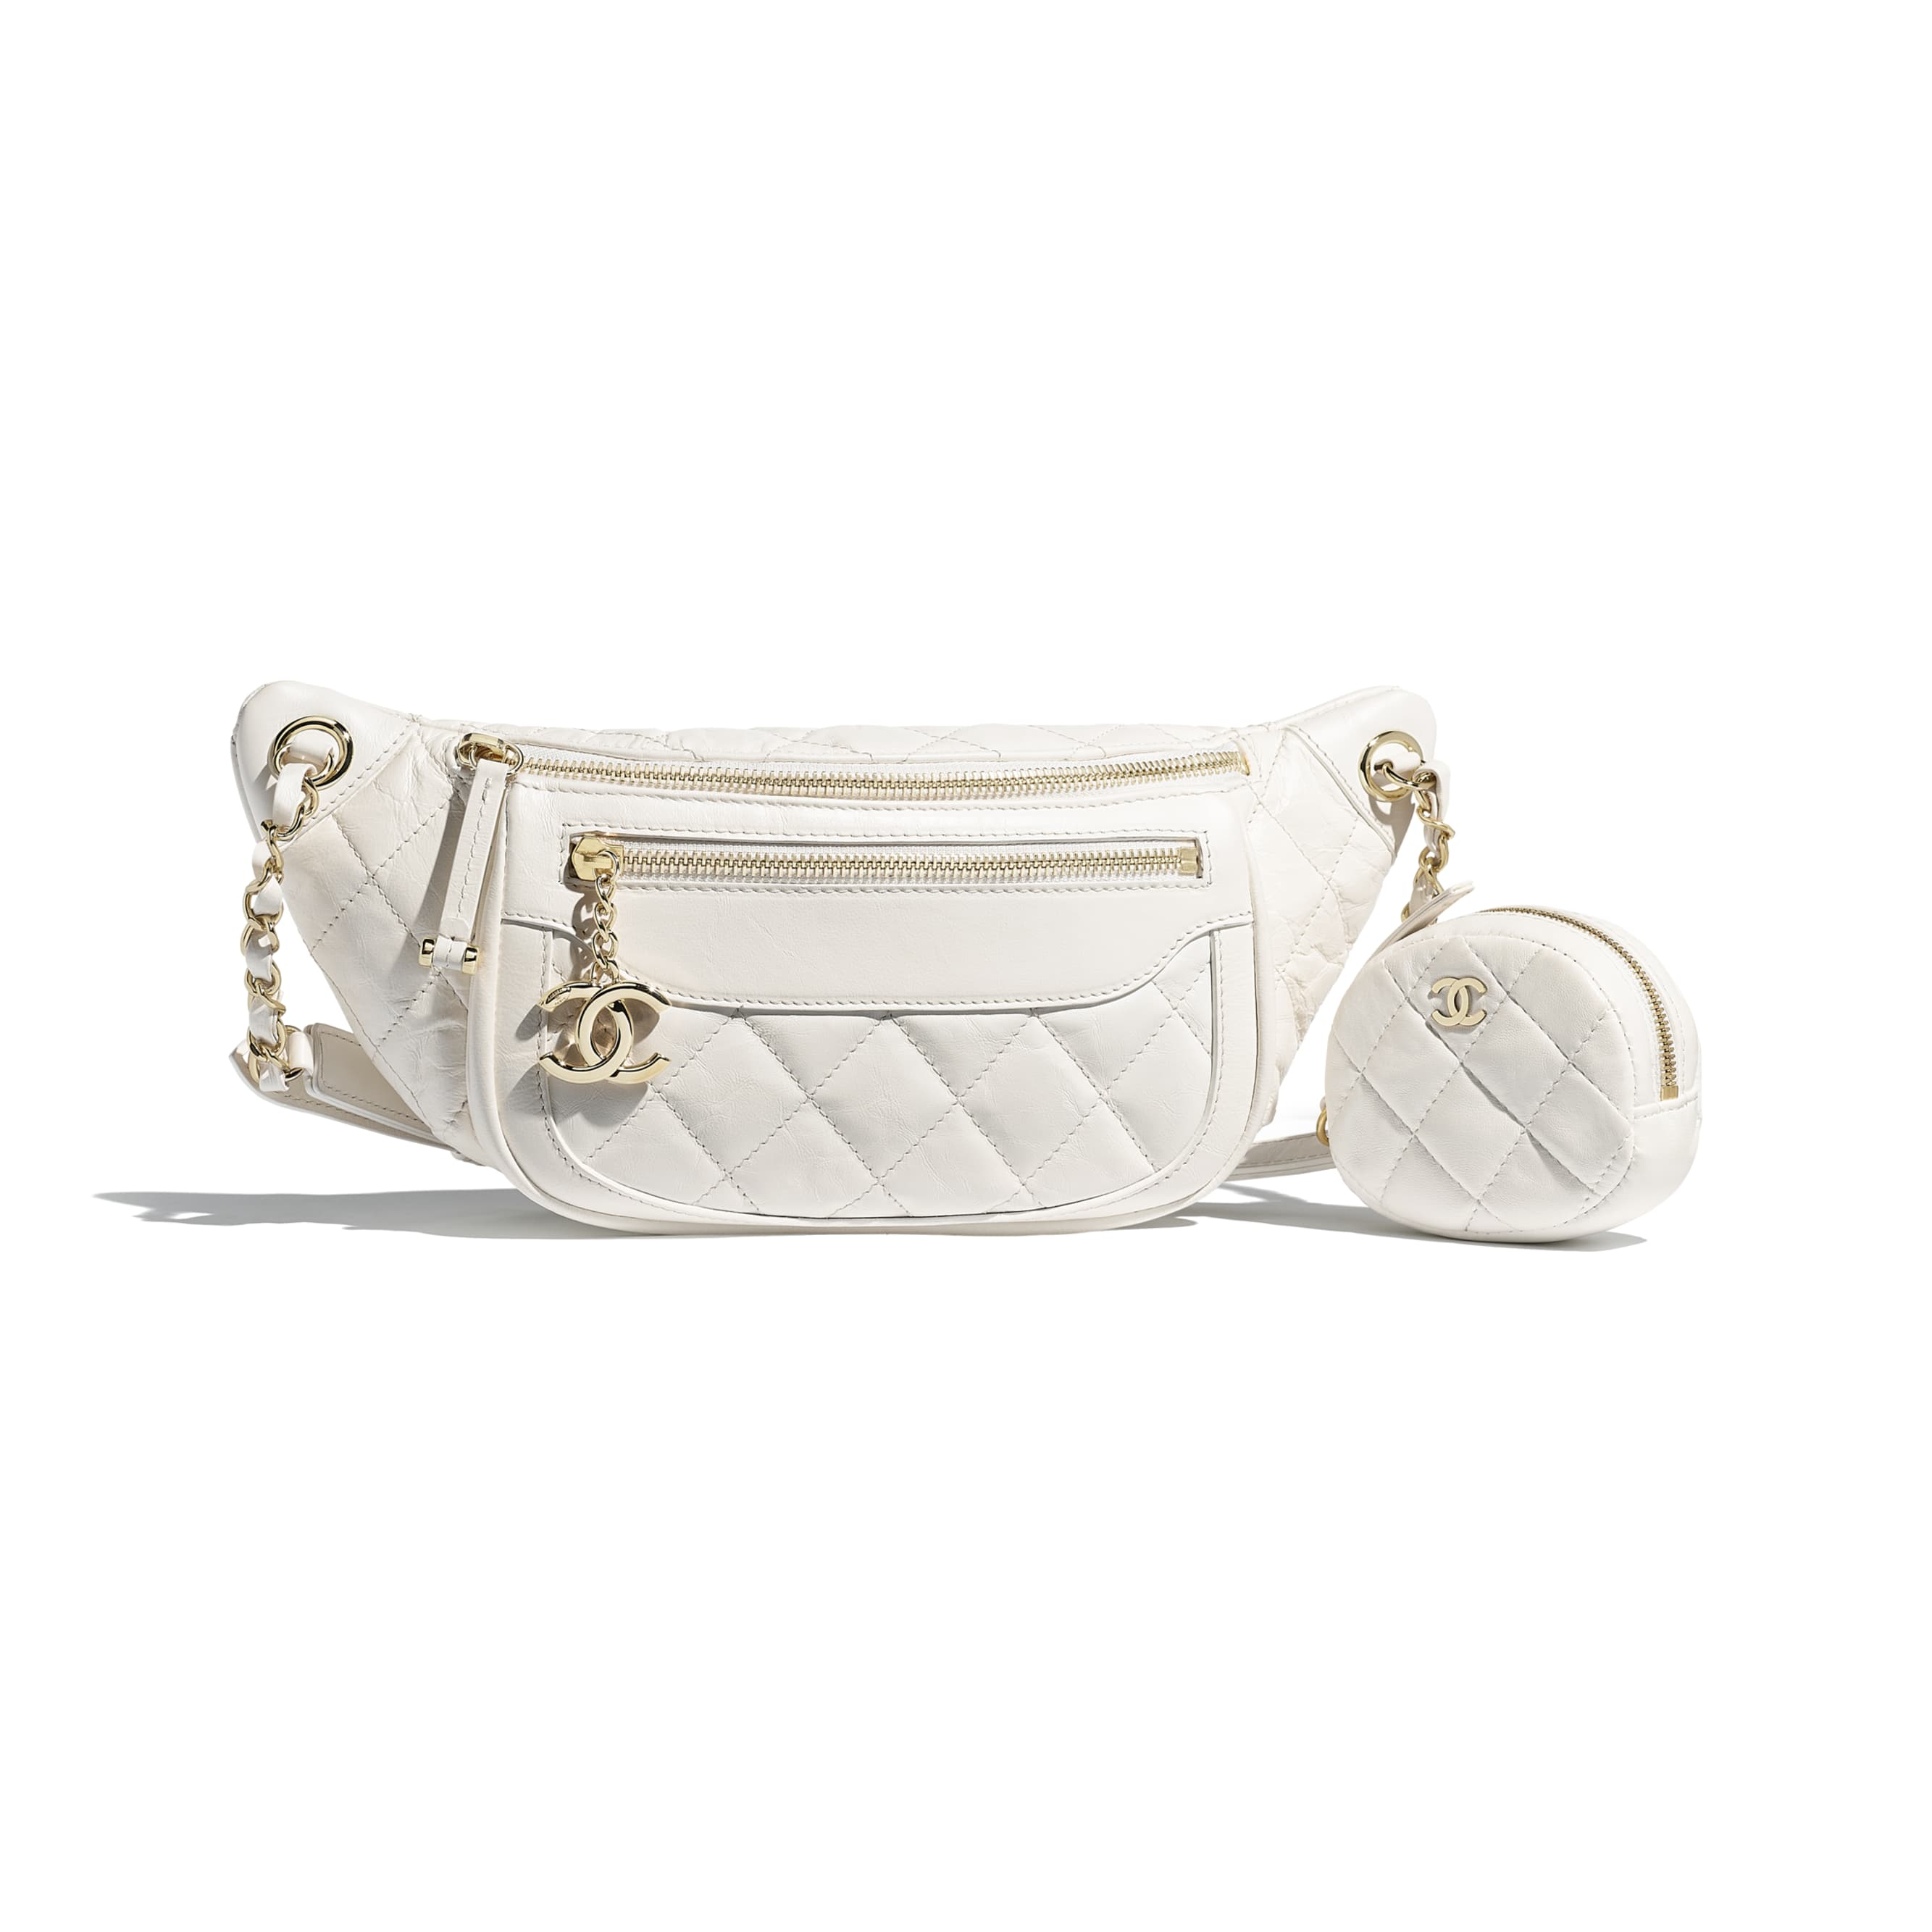 Waist Bag & Coin Purse - White - Aged Calfskin & Gold-Tone Metal - Default view - see standard sized version